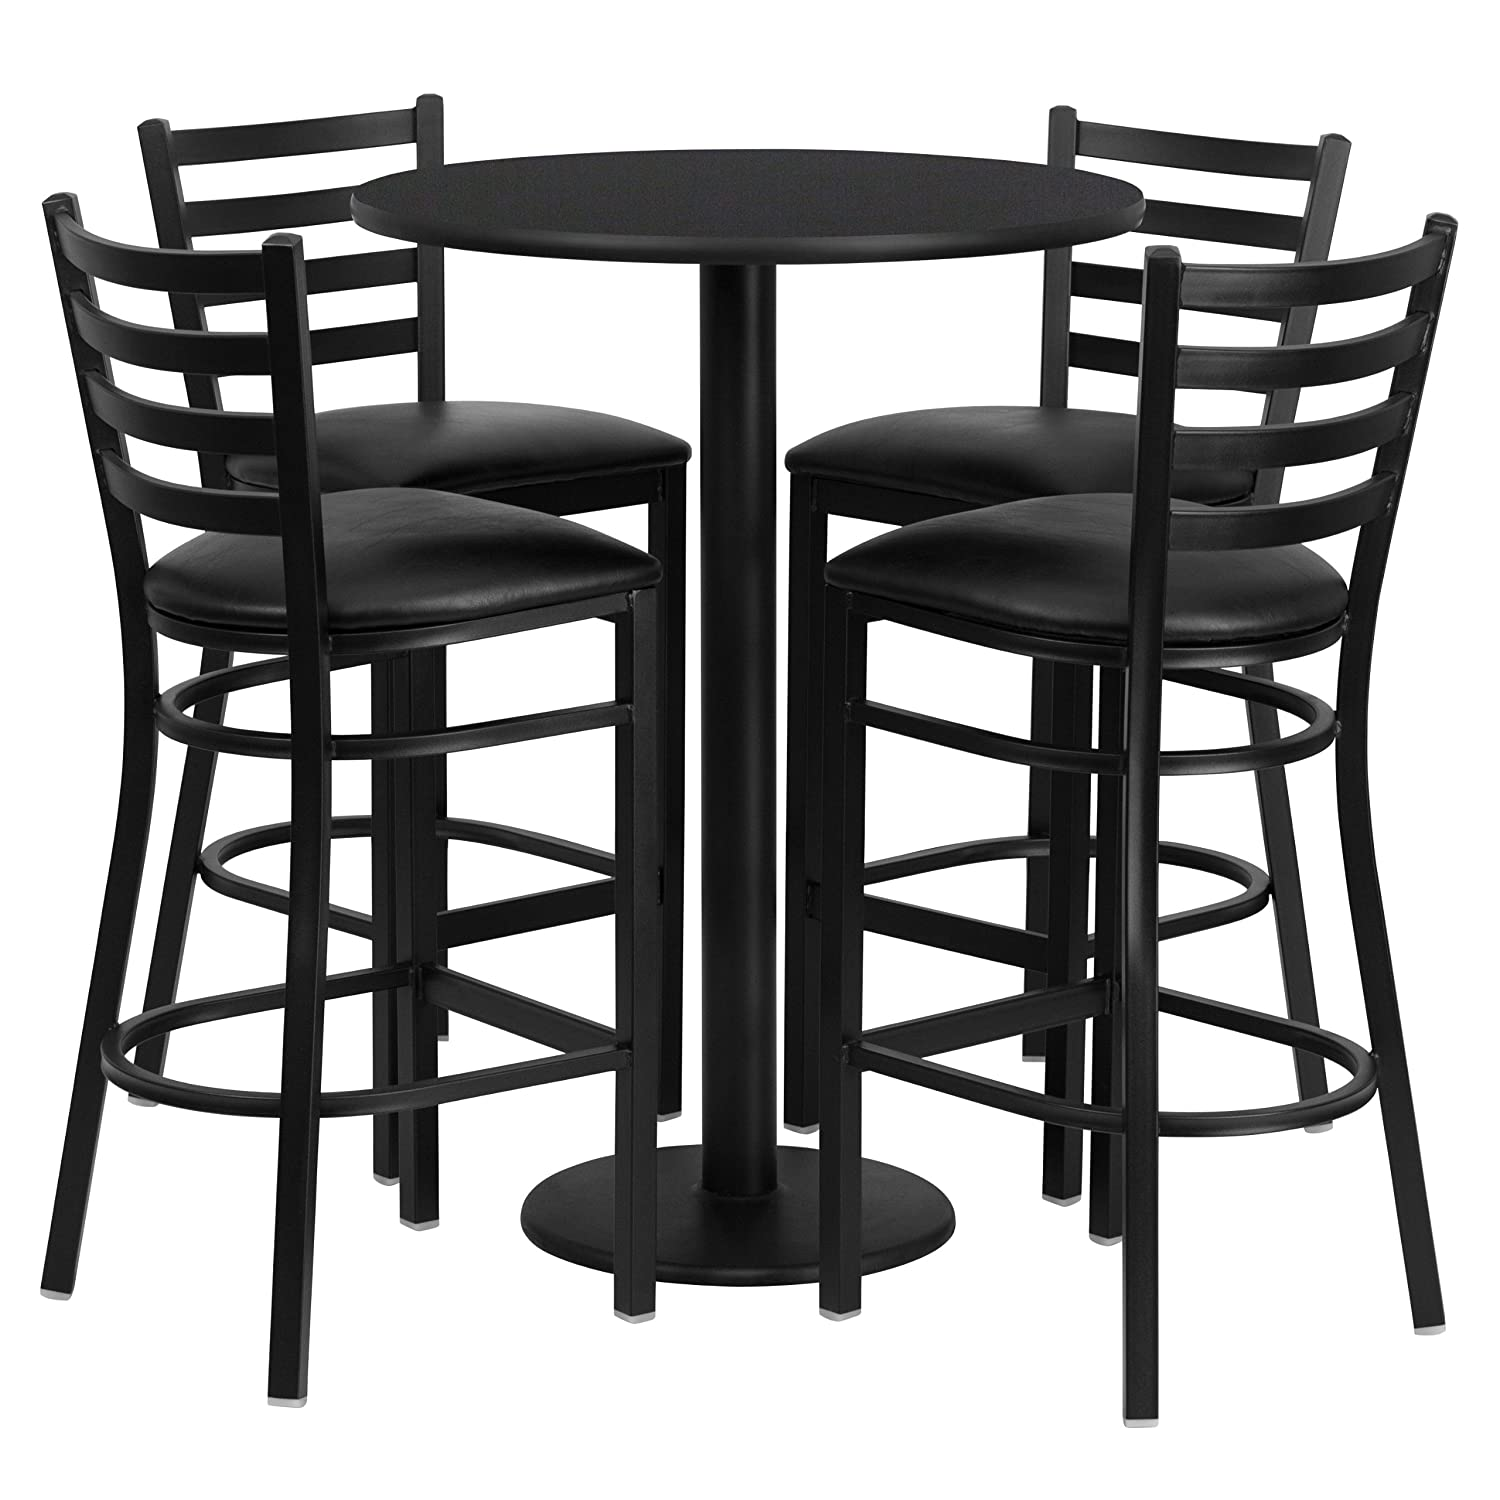 Amazon.com Flash Furniture 30u0027u0027 Round Black Laminate Table Set with 4 Ladder Back Metal Barstools - Black Vinyl Seat Kitchen u0026 Dining  sc 1 st  Amazon.com & Amazon.com: Flash Furniture 30u0027u0027 Round Black Laminate Table Set ... islam-shia.org